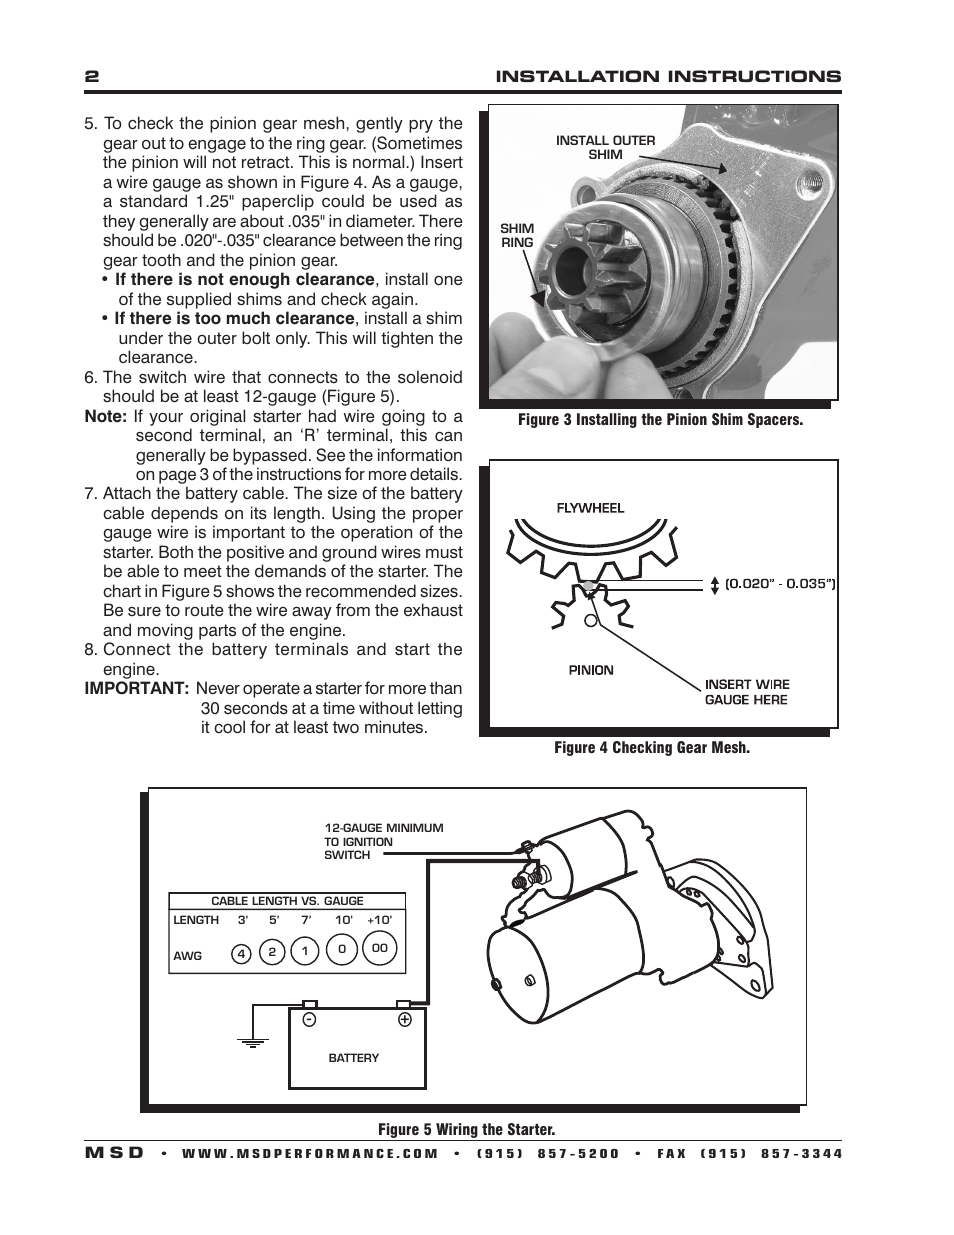 hight resolution of msd 50951 dynaforce starter chevy 168 tooth staggered mount installation user manual page 2 4